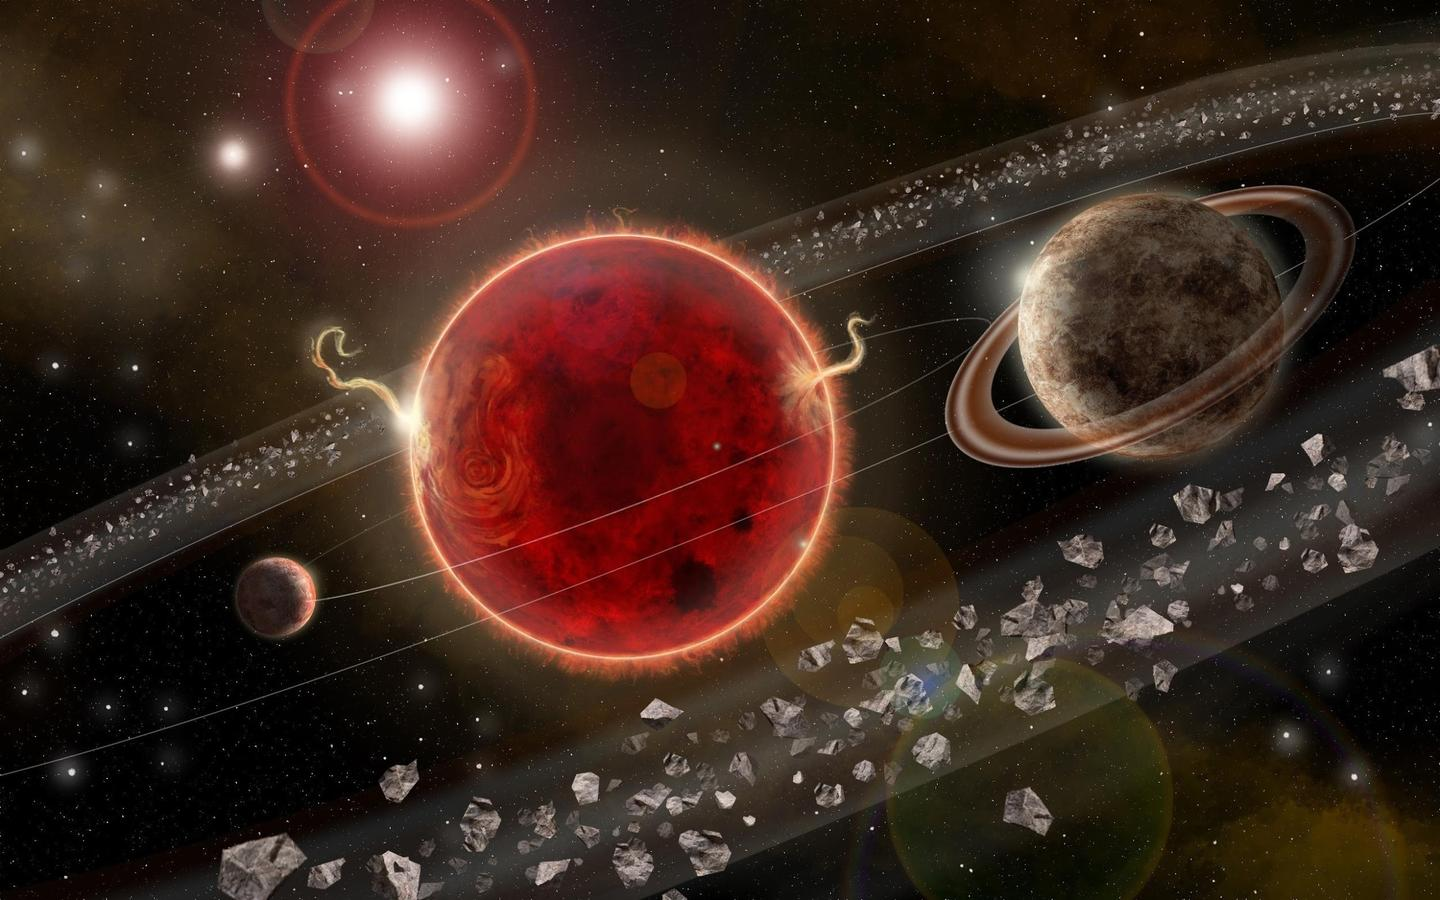 An artist's rendering of the Proxima Centauri system, featuring the star at the center, the smaller planet Proxima b at the left and the second potential planet Proxima c at the right